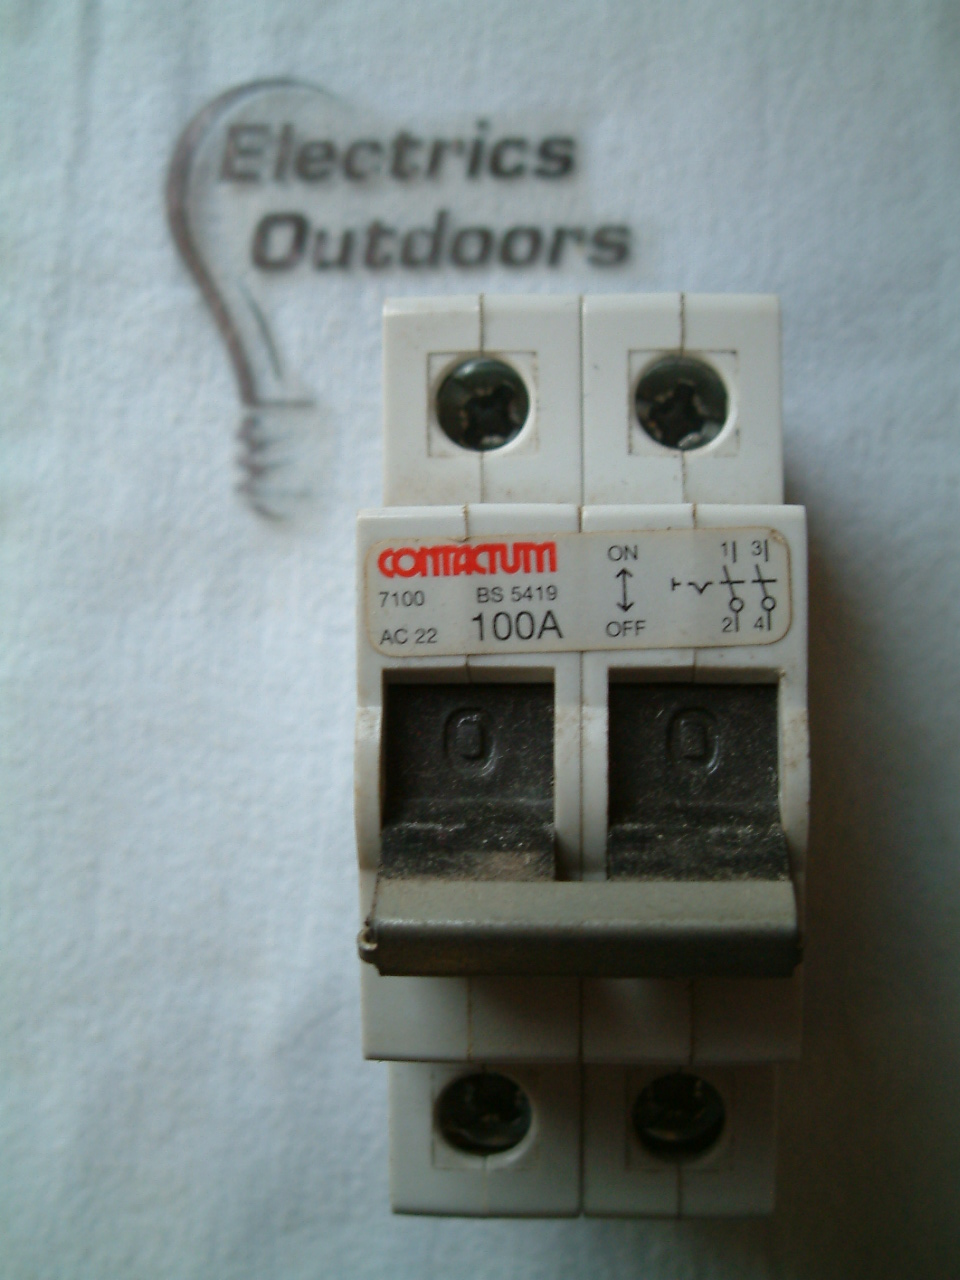 CONTACTUM 100 AMP MAIN SWITCH DISCONNECTOR 7100 BS 5419